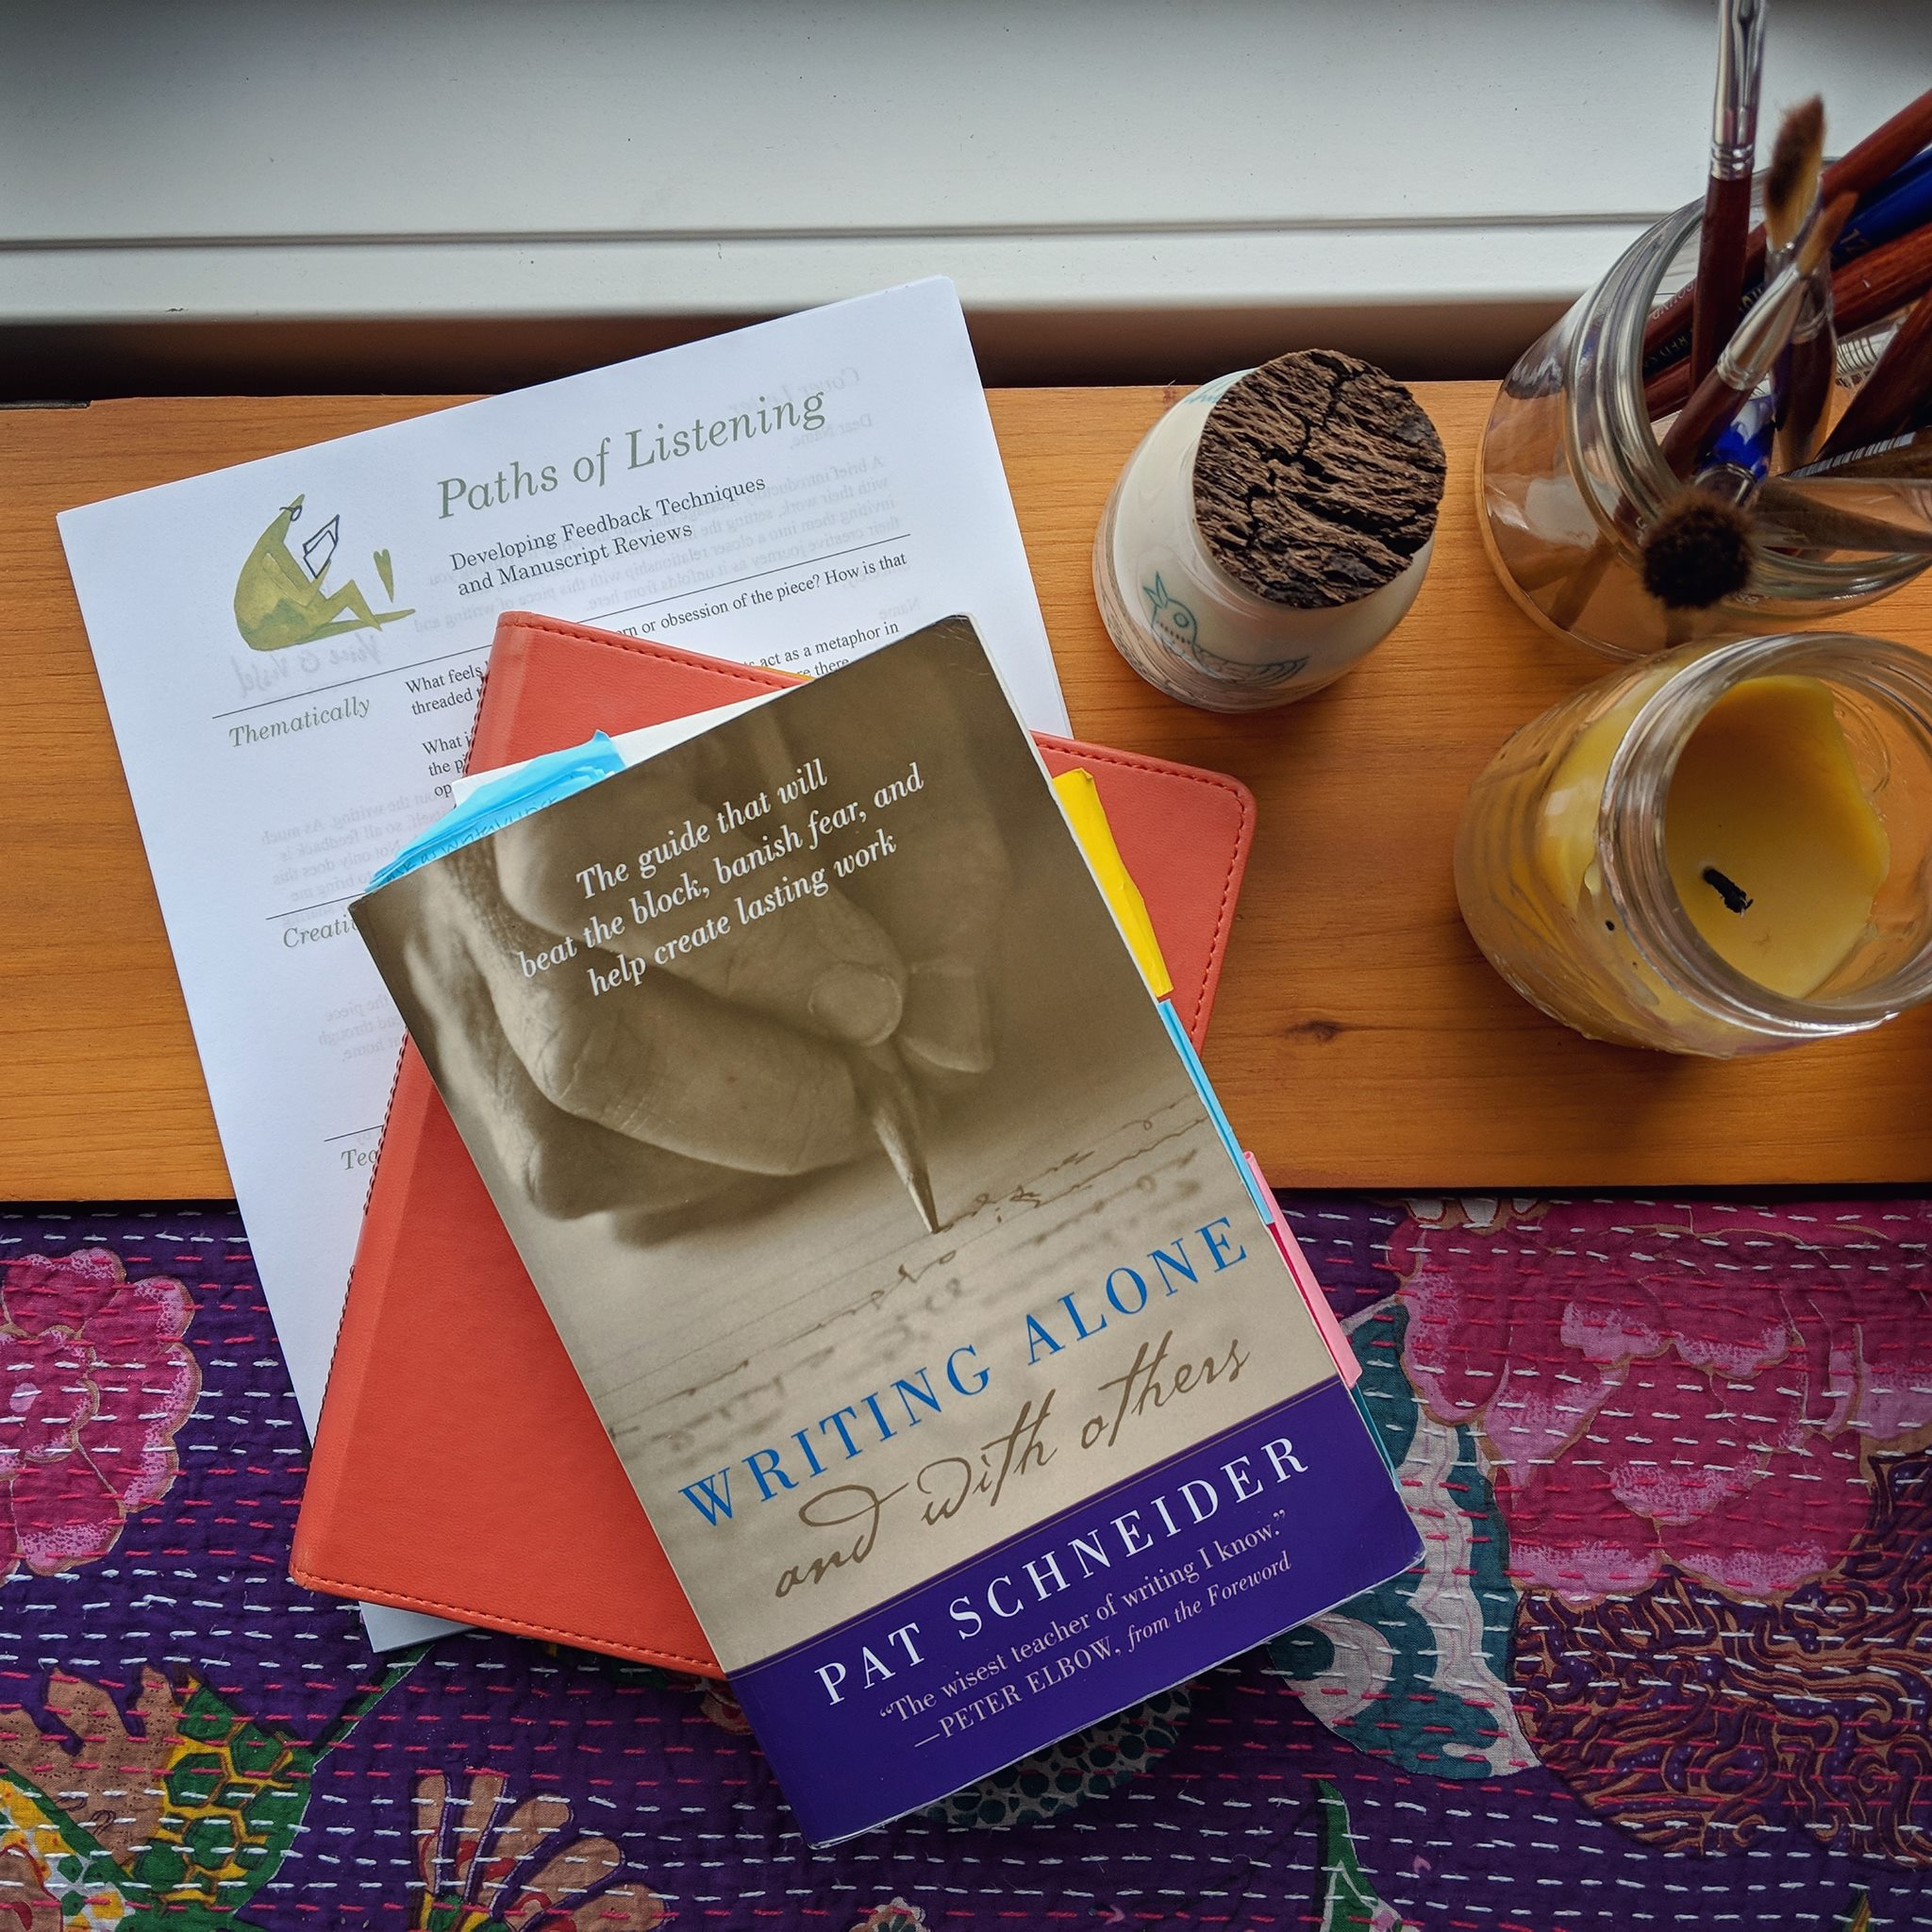 Writing Alone & With Others, by Pat Schneider, founder of Amherst Writers & Artists